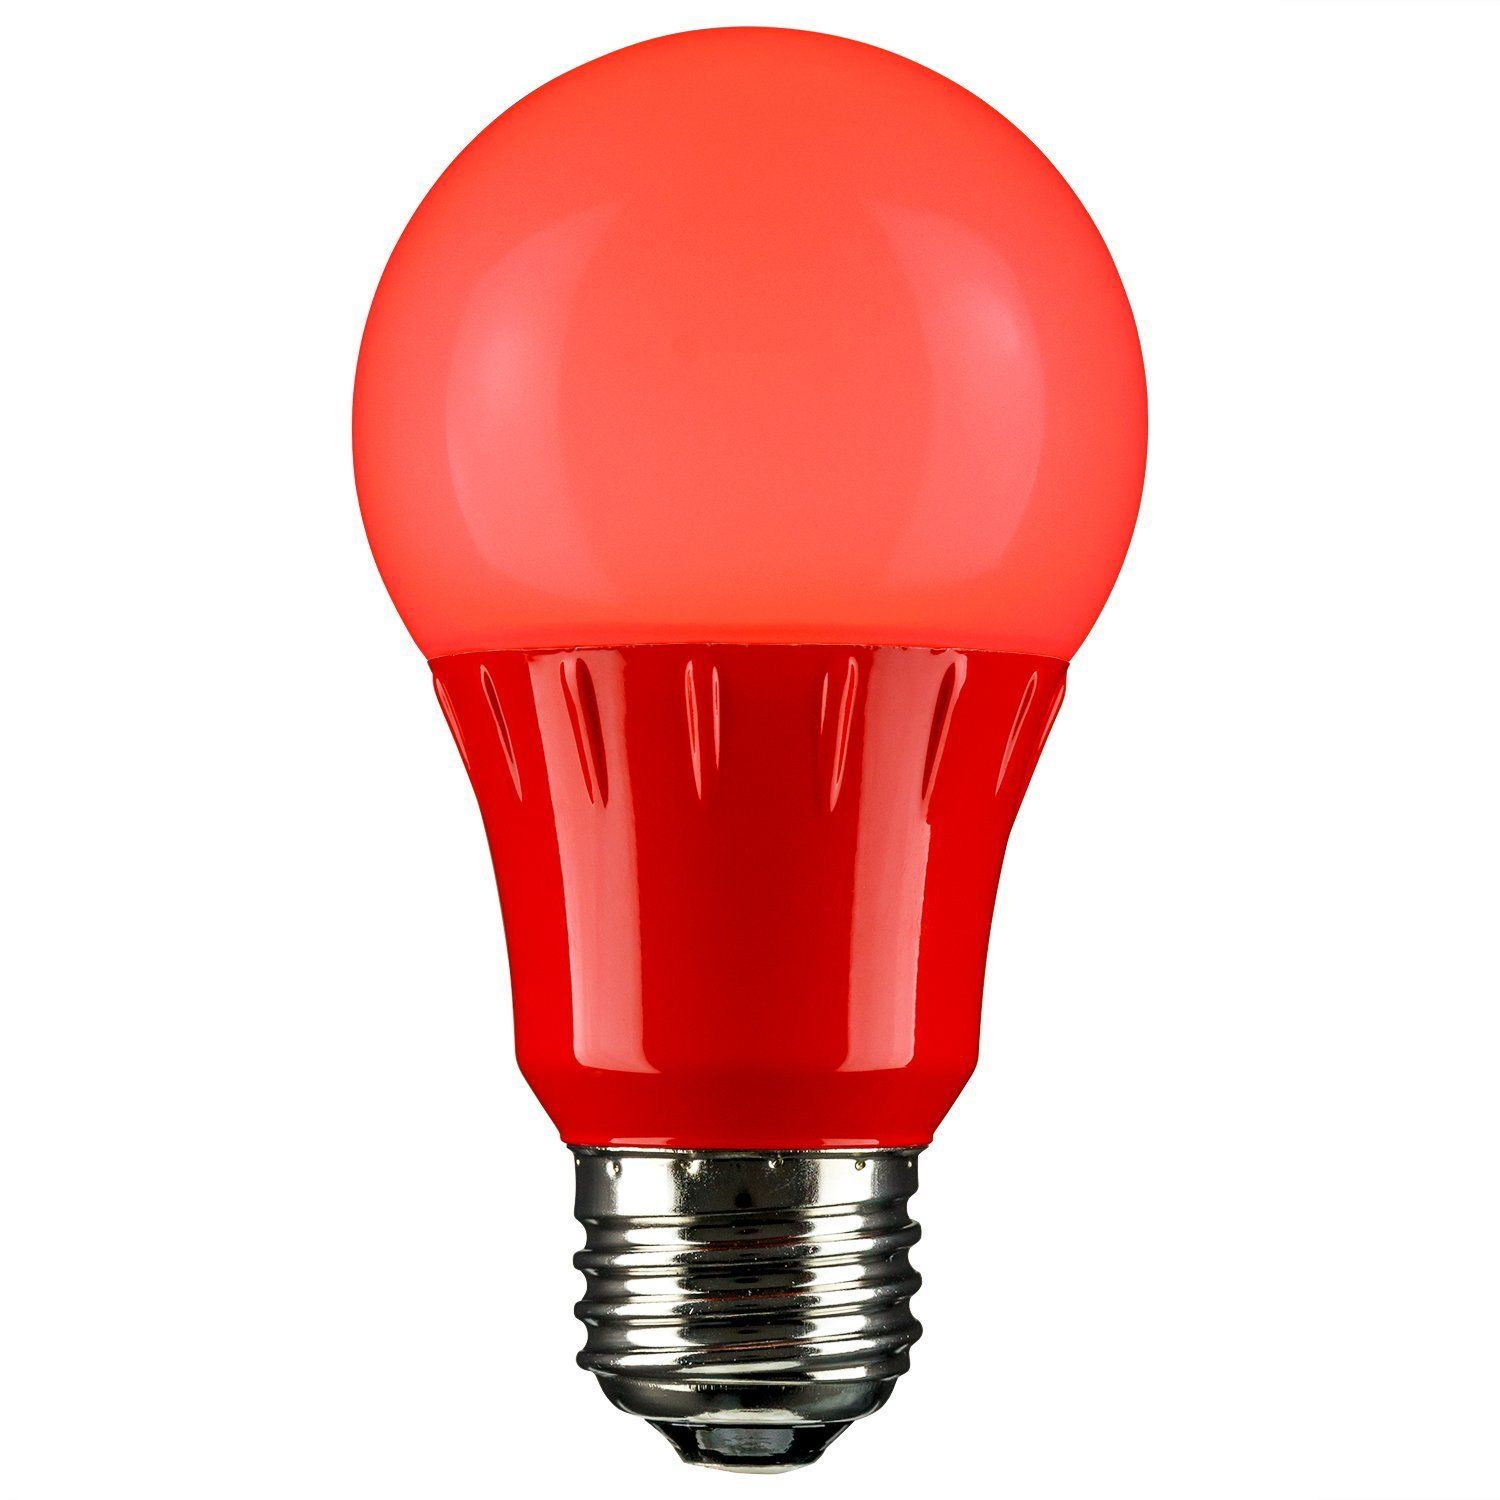 Best Light Bulbs For Sleep Led Light Bulb Light Bulb Red Light Bulbs